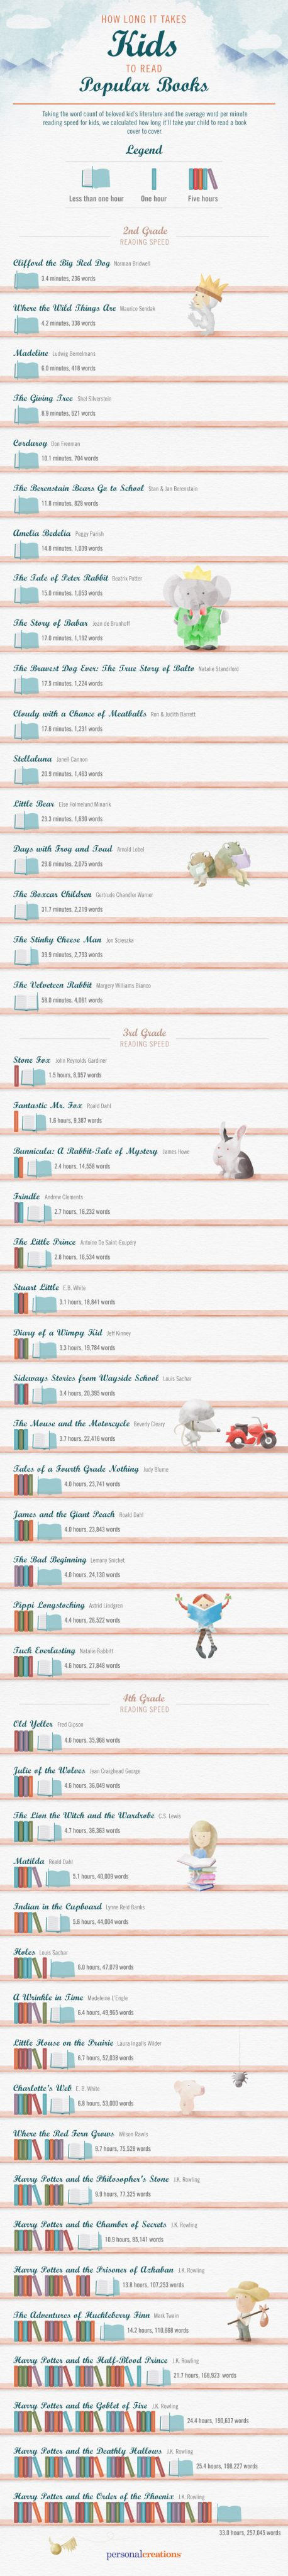 How-Long-It-Takes-kids-to-read